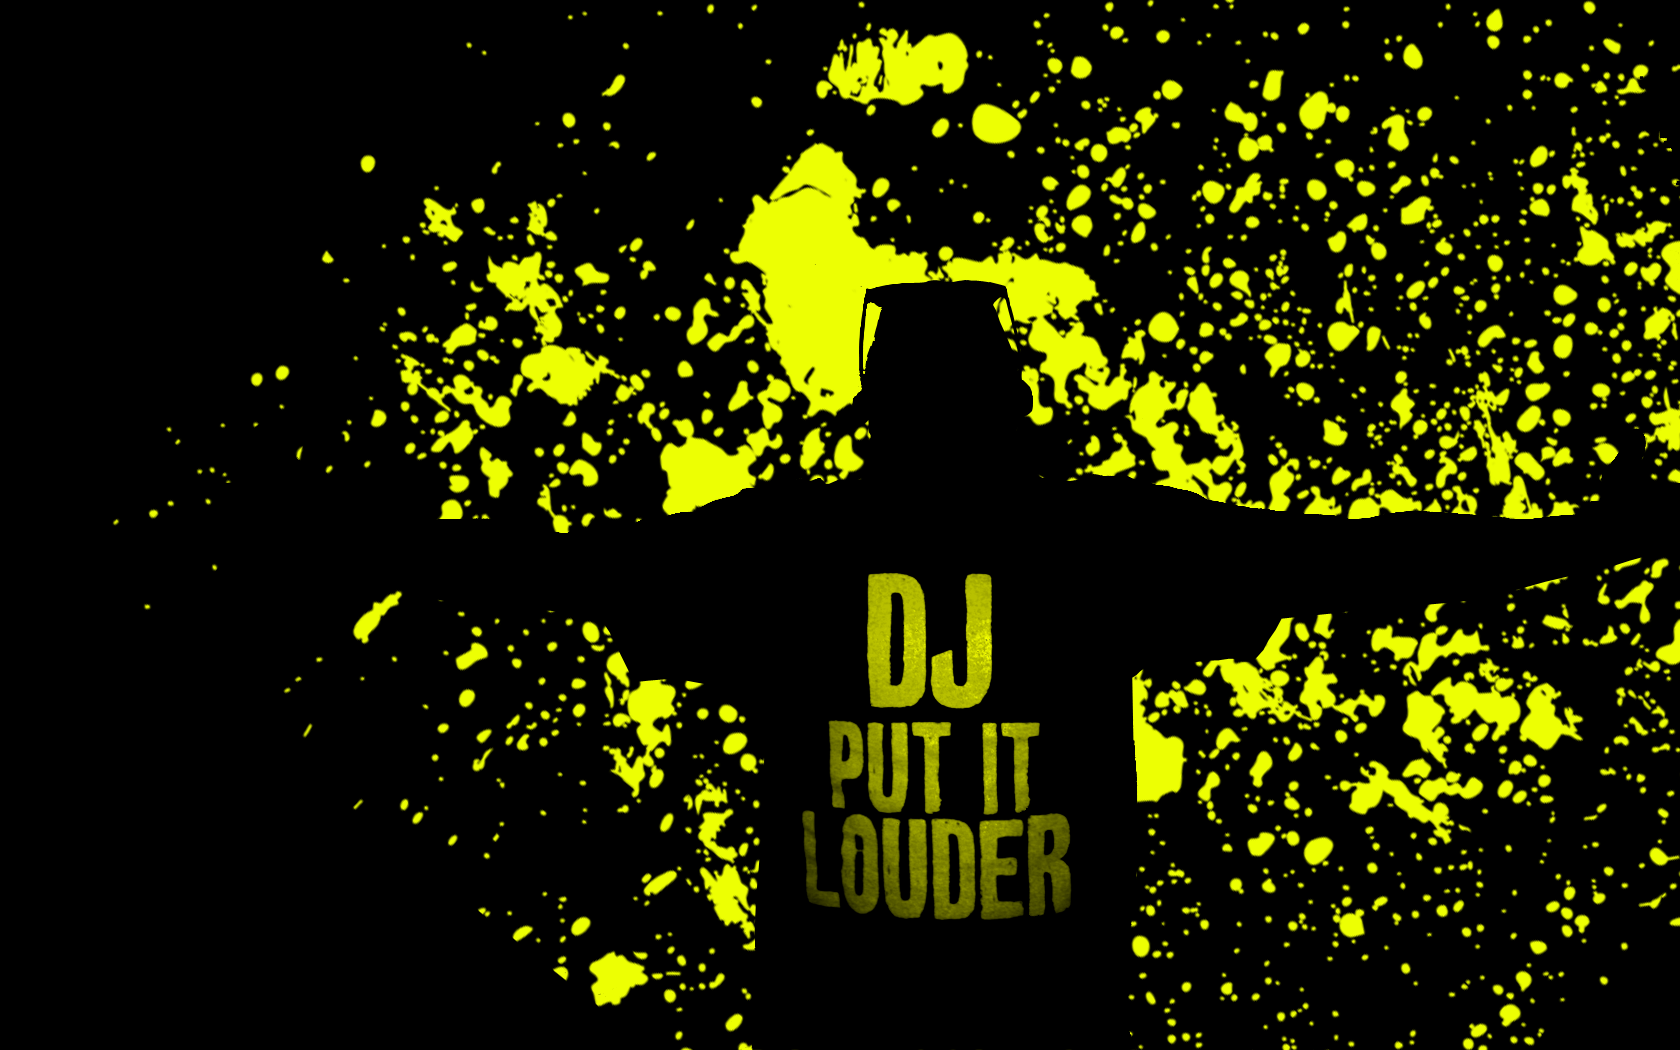 dj wallpaper and background image | 1680x1050 | id:174985